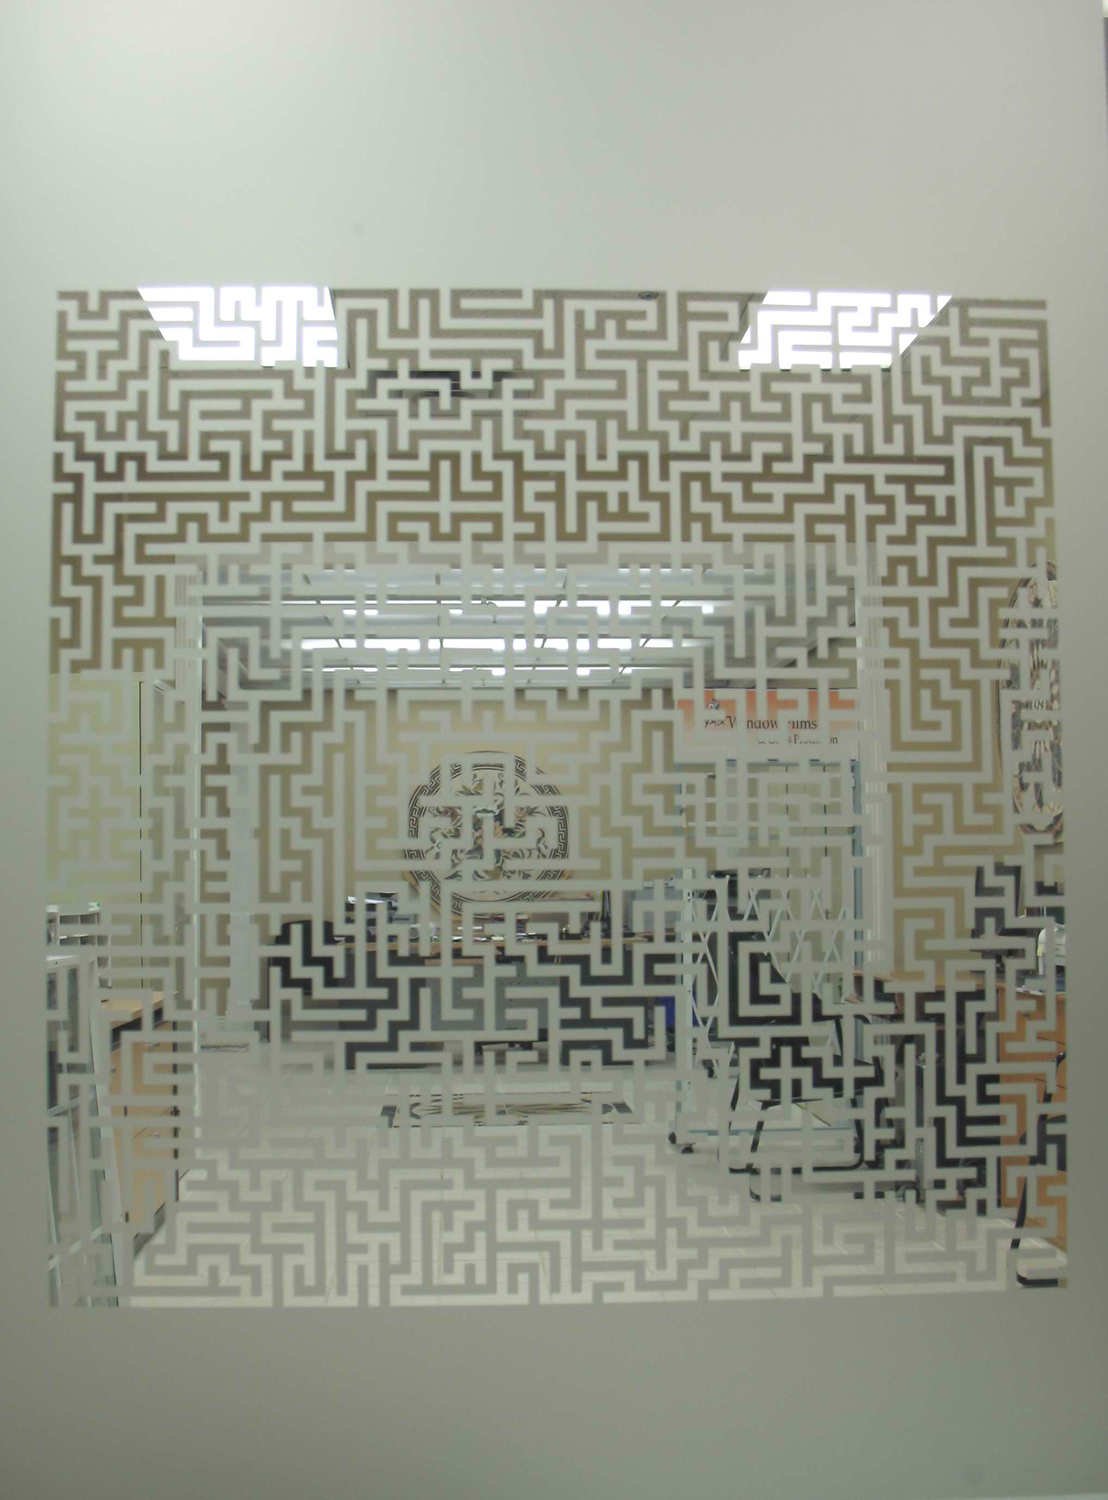 labyrinth-graphic-cut-window-film.jpg